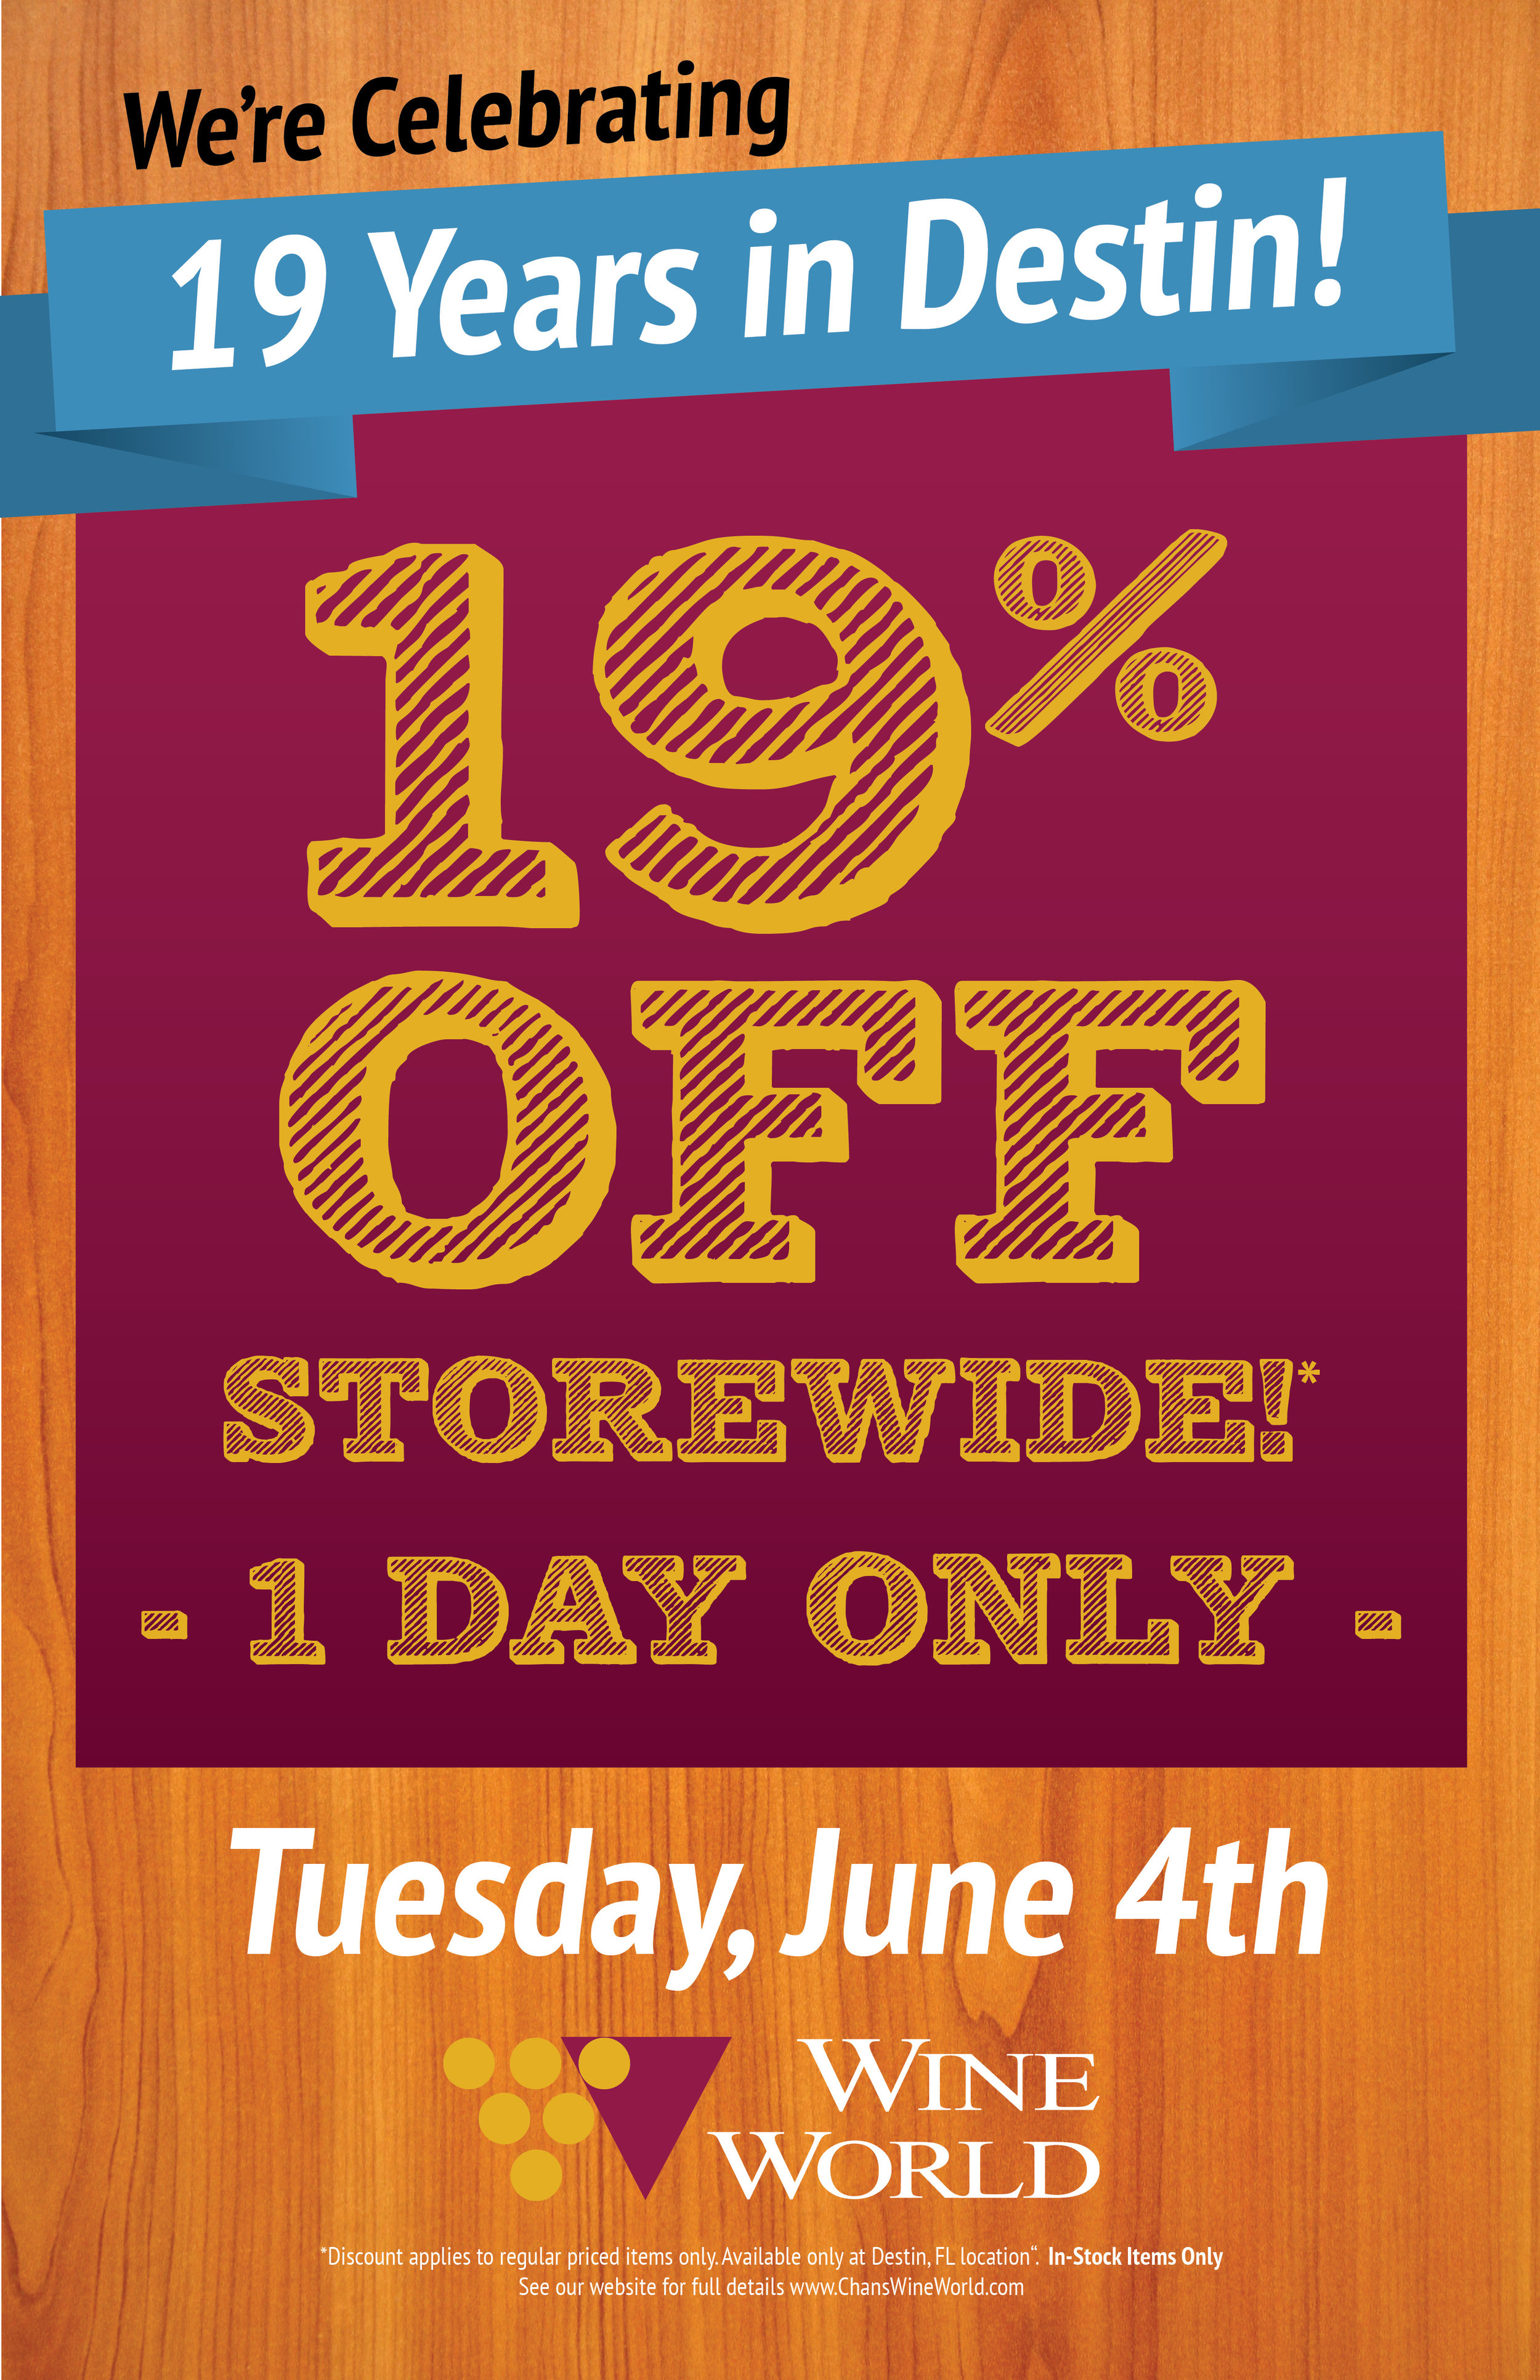 **VALID IN DESTIN LOCATION ONLY. 06/04/2019. In-stock, regularly priced items only. No rain checks. Cannot be combined with other offers or discounts. Glass of wine as part of a buy-one-get-one offer. Must present proof of retail purchase on 06/04/19 to redeem. Some exclusions may apply.